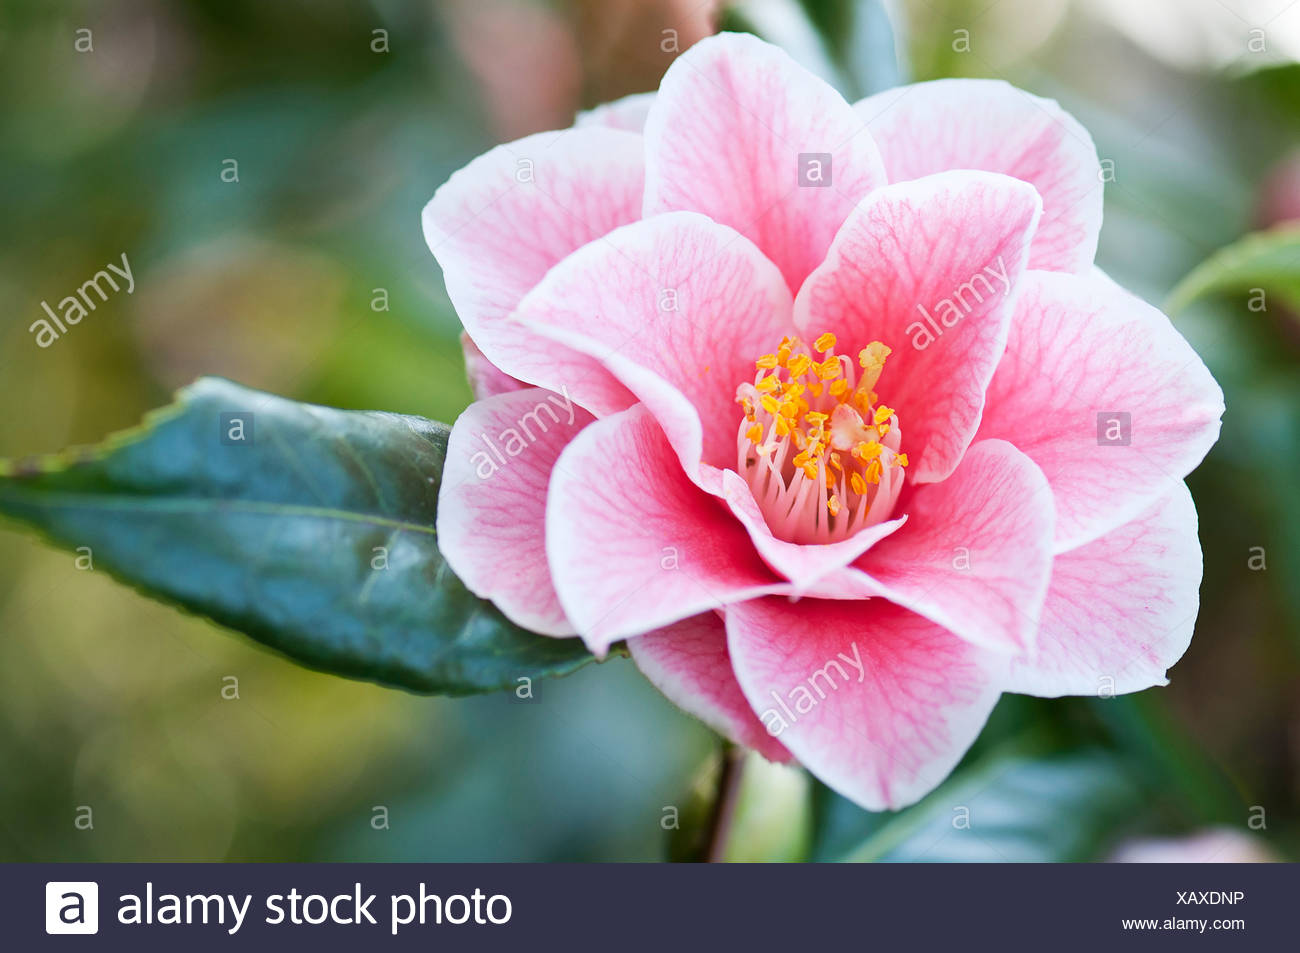 Single pink flower of camelia japonica yours truly with delicate single pink flower of camelia japonica yours truly with delicate veining extending over petals and yellow stamen in centre mightylinksfo